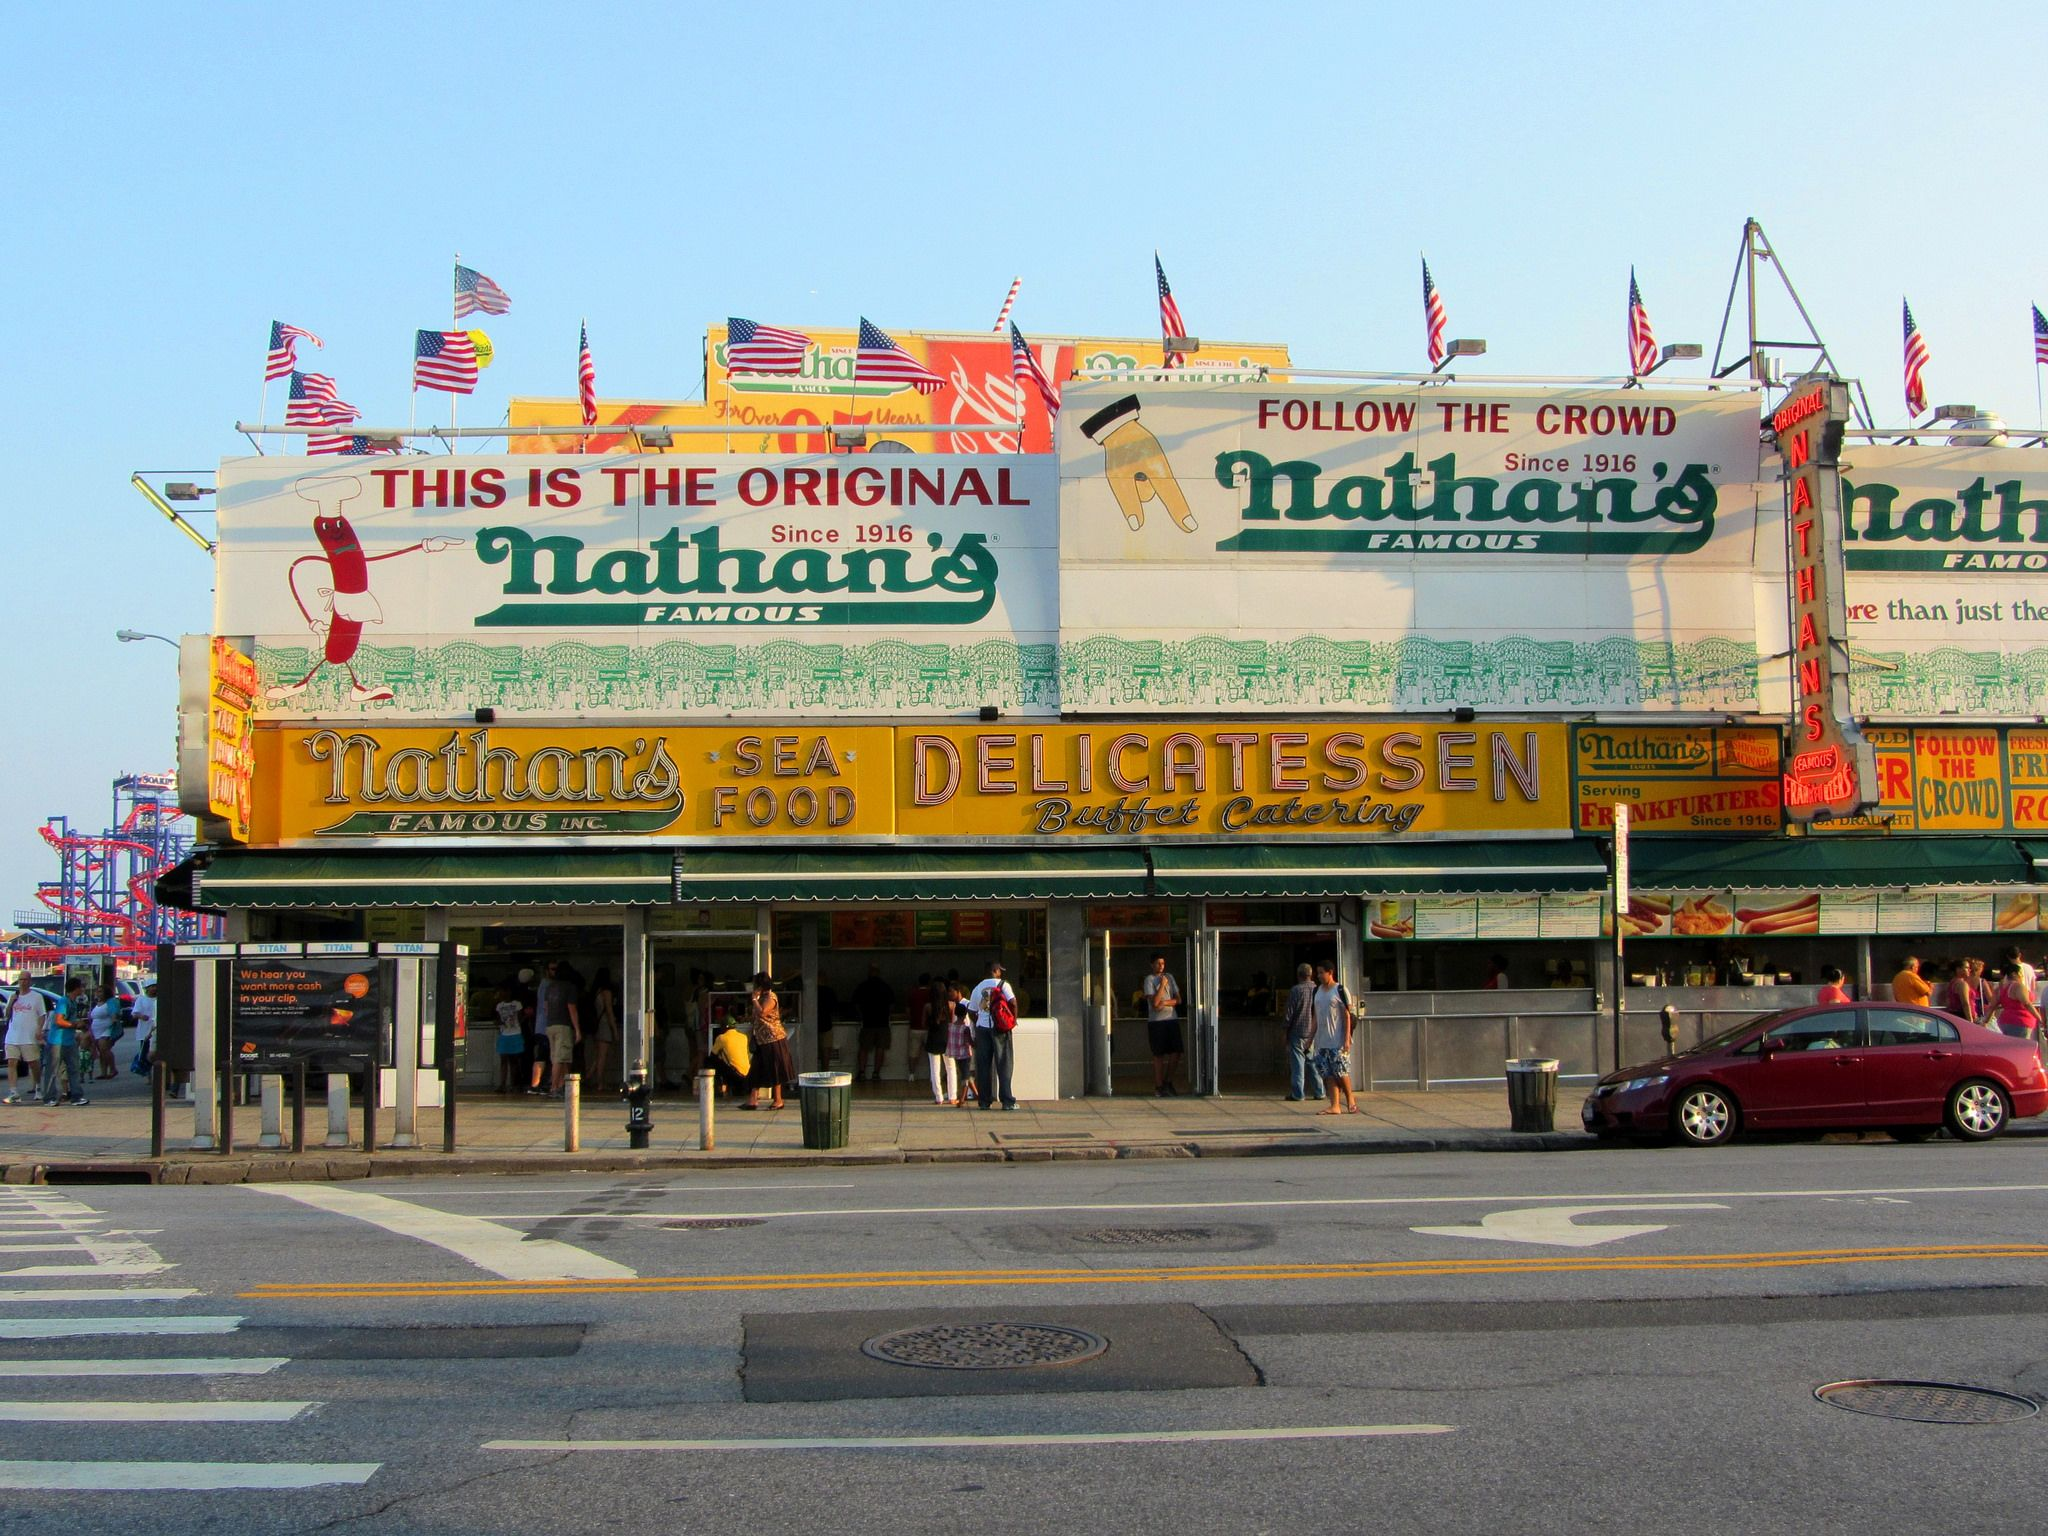 Nathan's Famous hot dog restaurant in New York